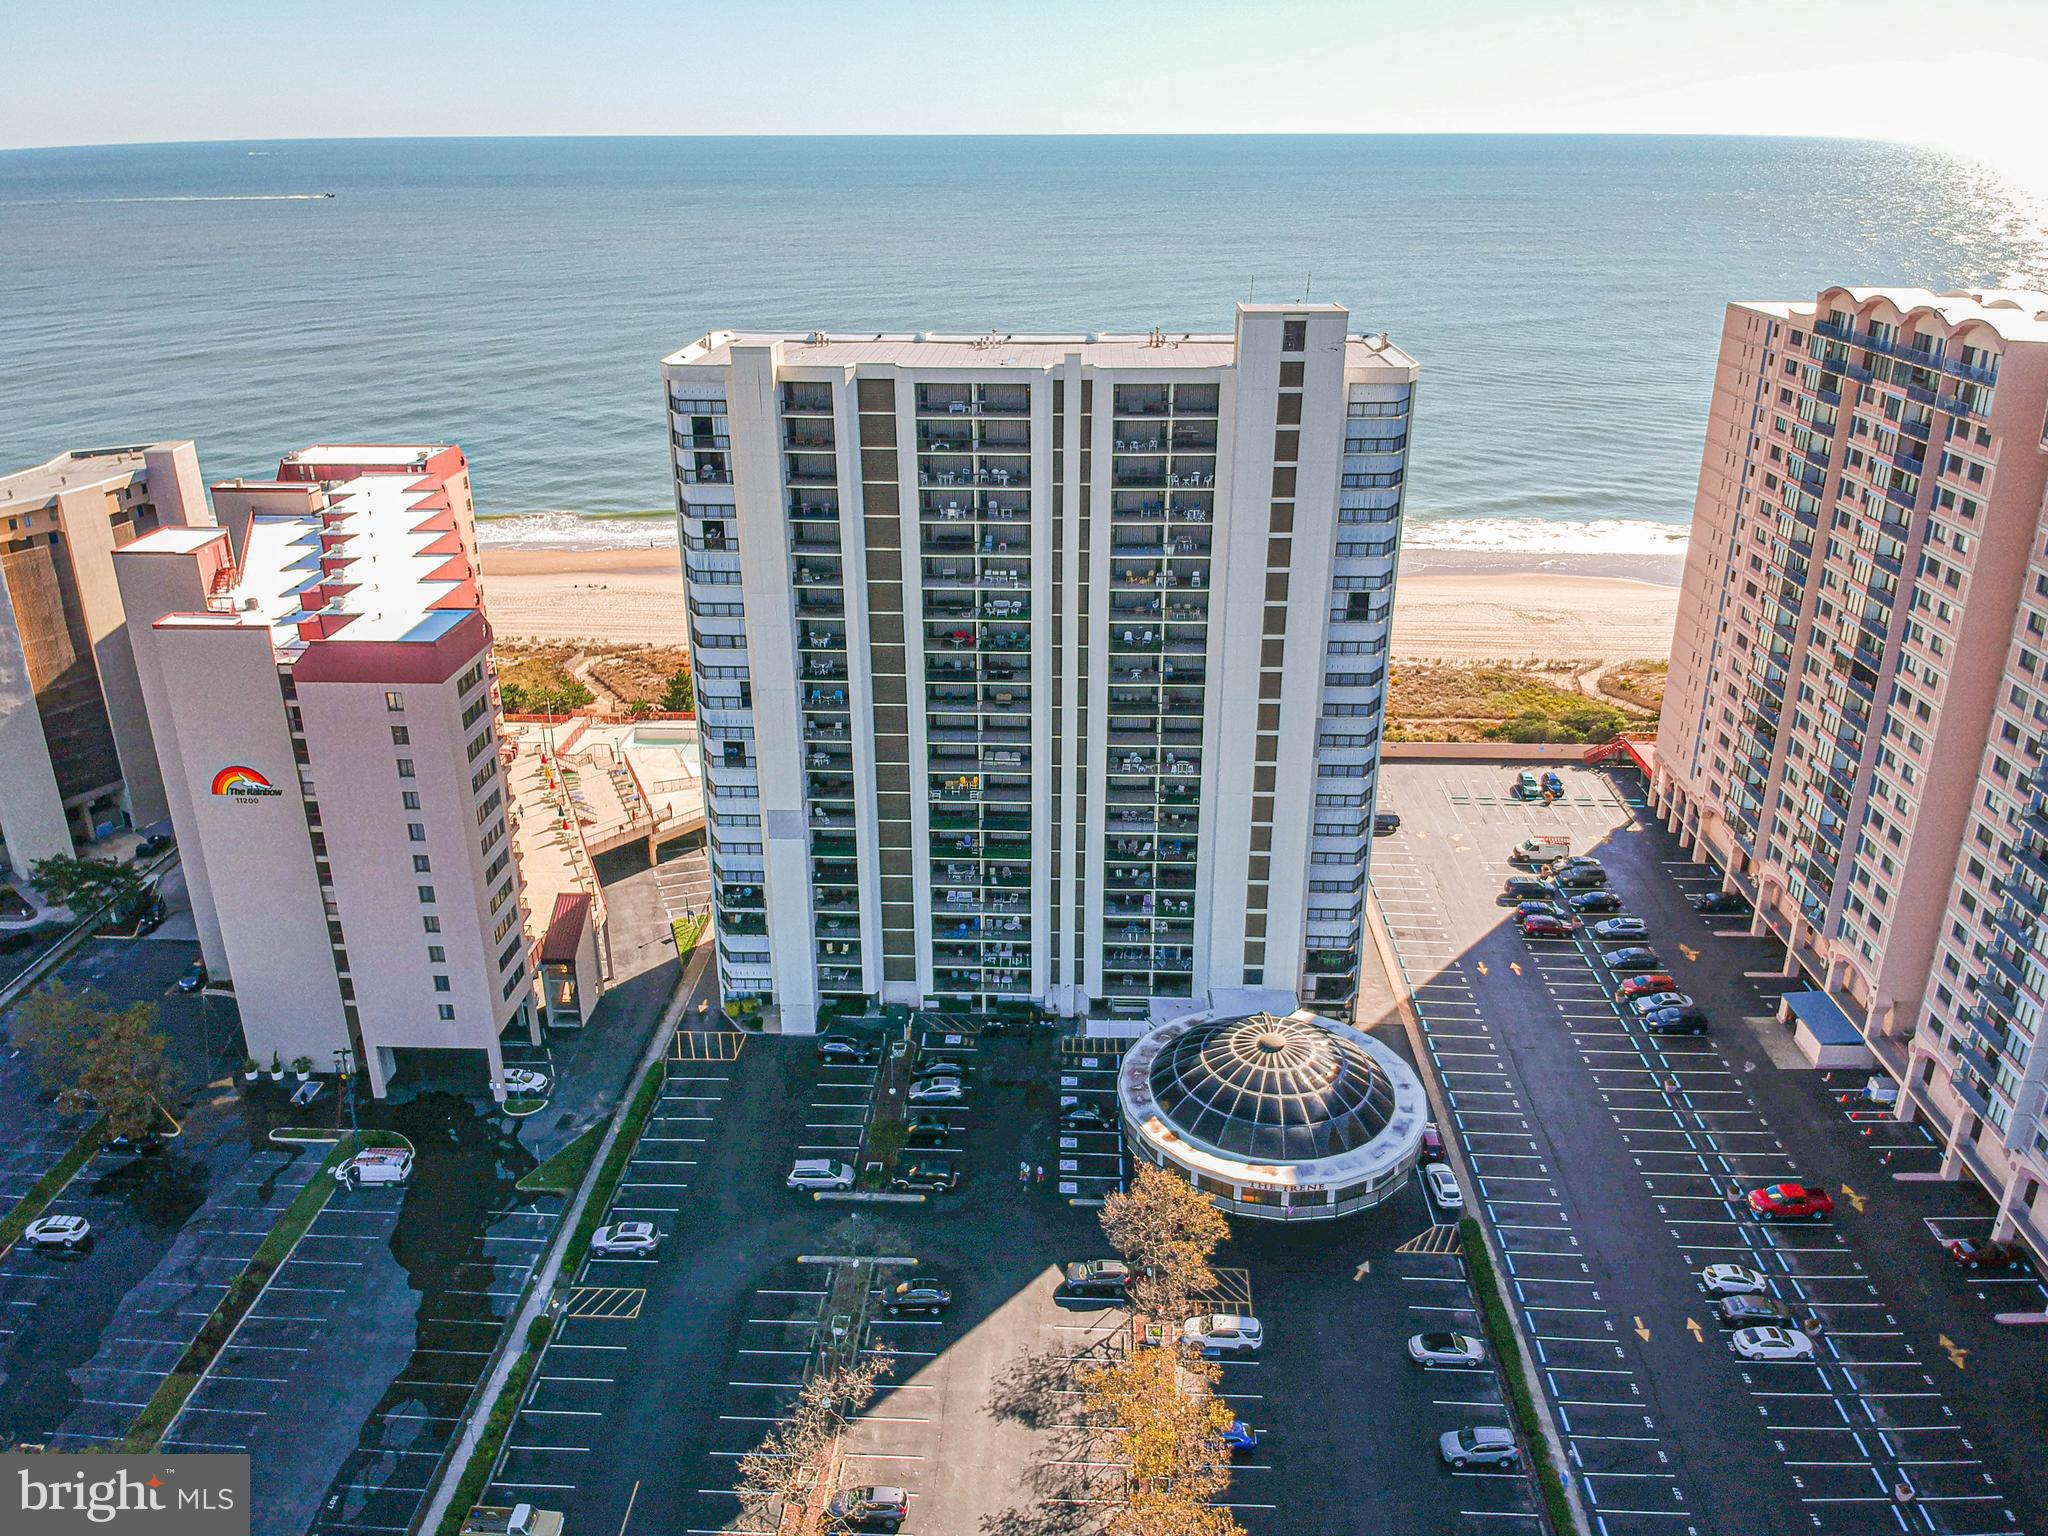 South End Direct Ocean Front Unit. 2 Balconies with Hurricane Shutters. This unit comes with private